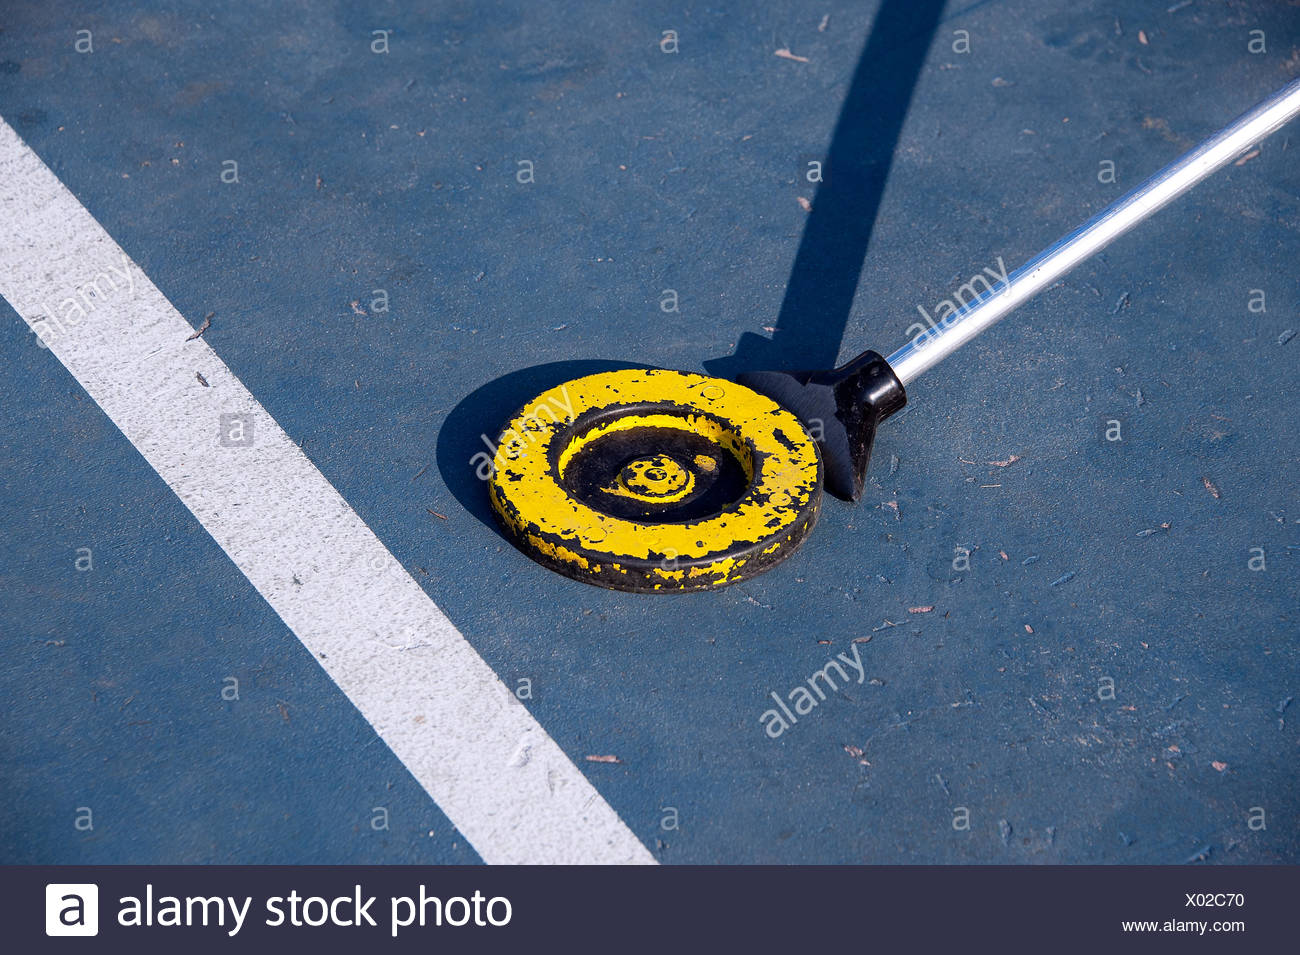 Shuffle board puck and paddle. - Stock Image